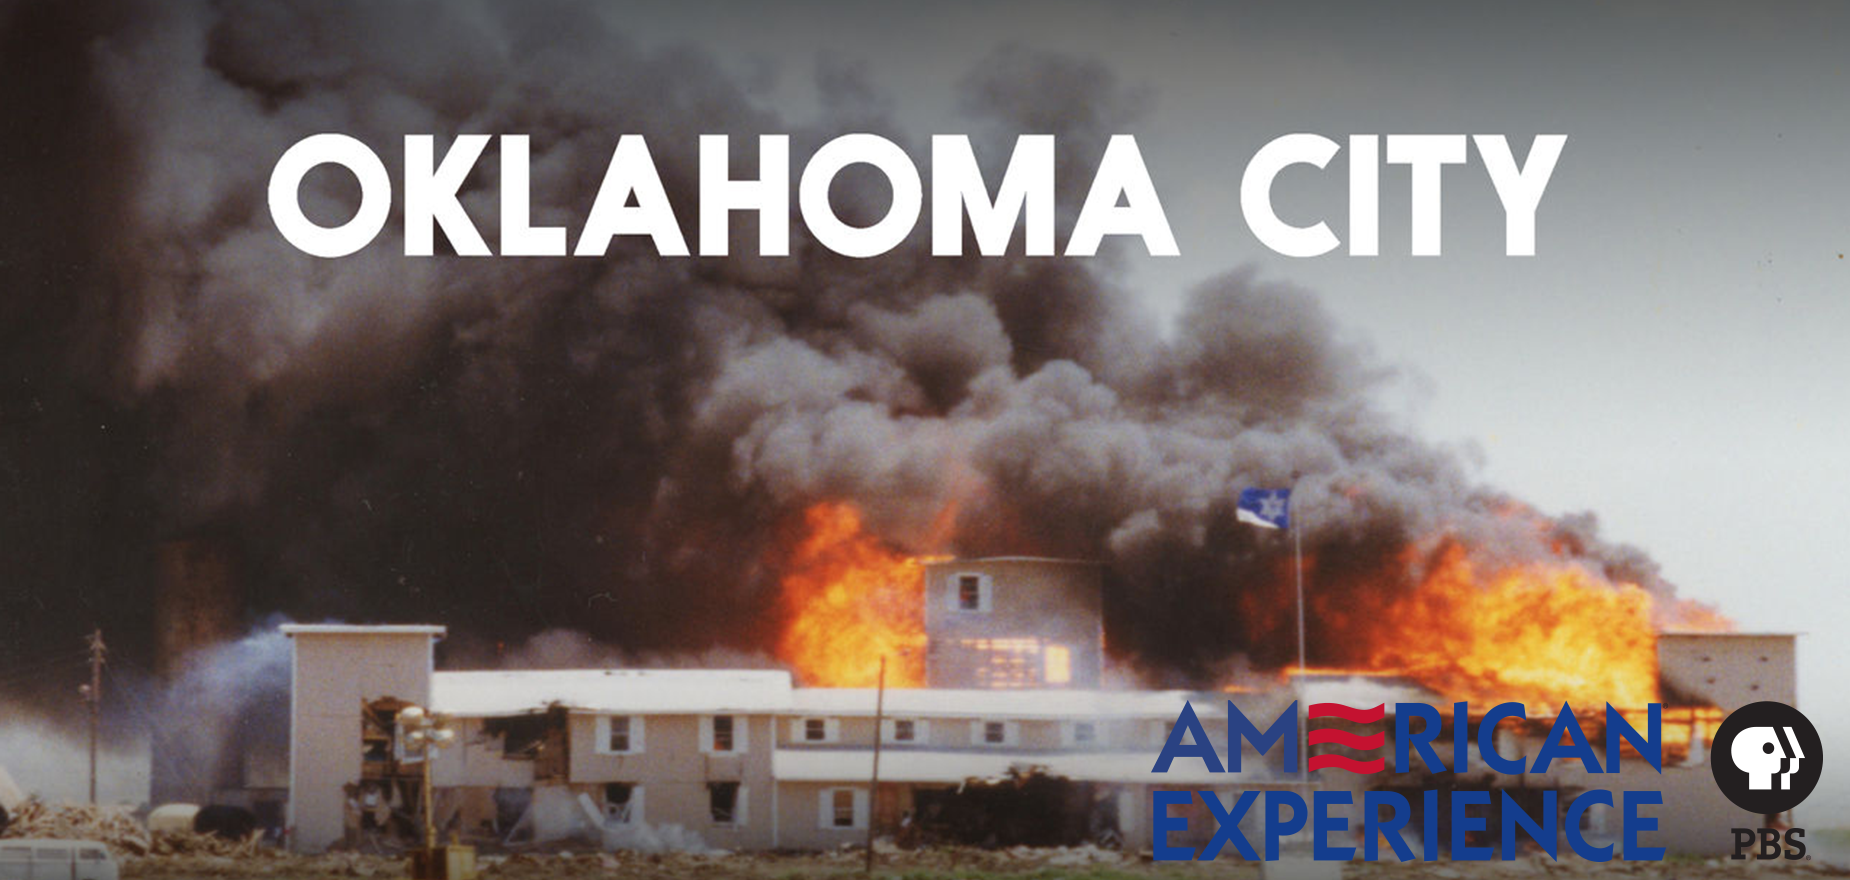 Oklahoma City - American Experience Films, WGBH Educational Foundation